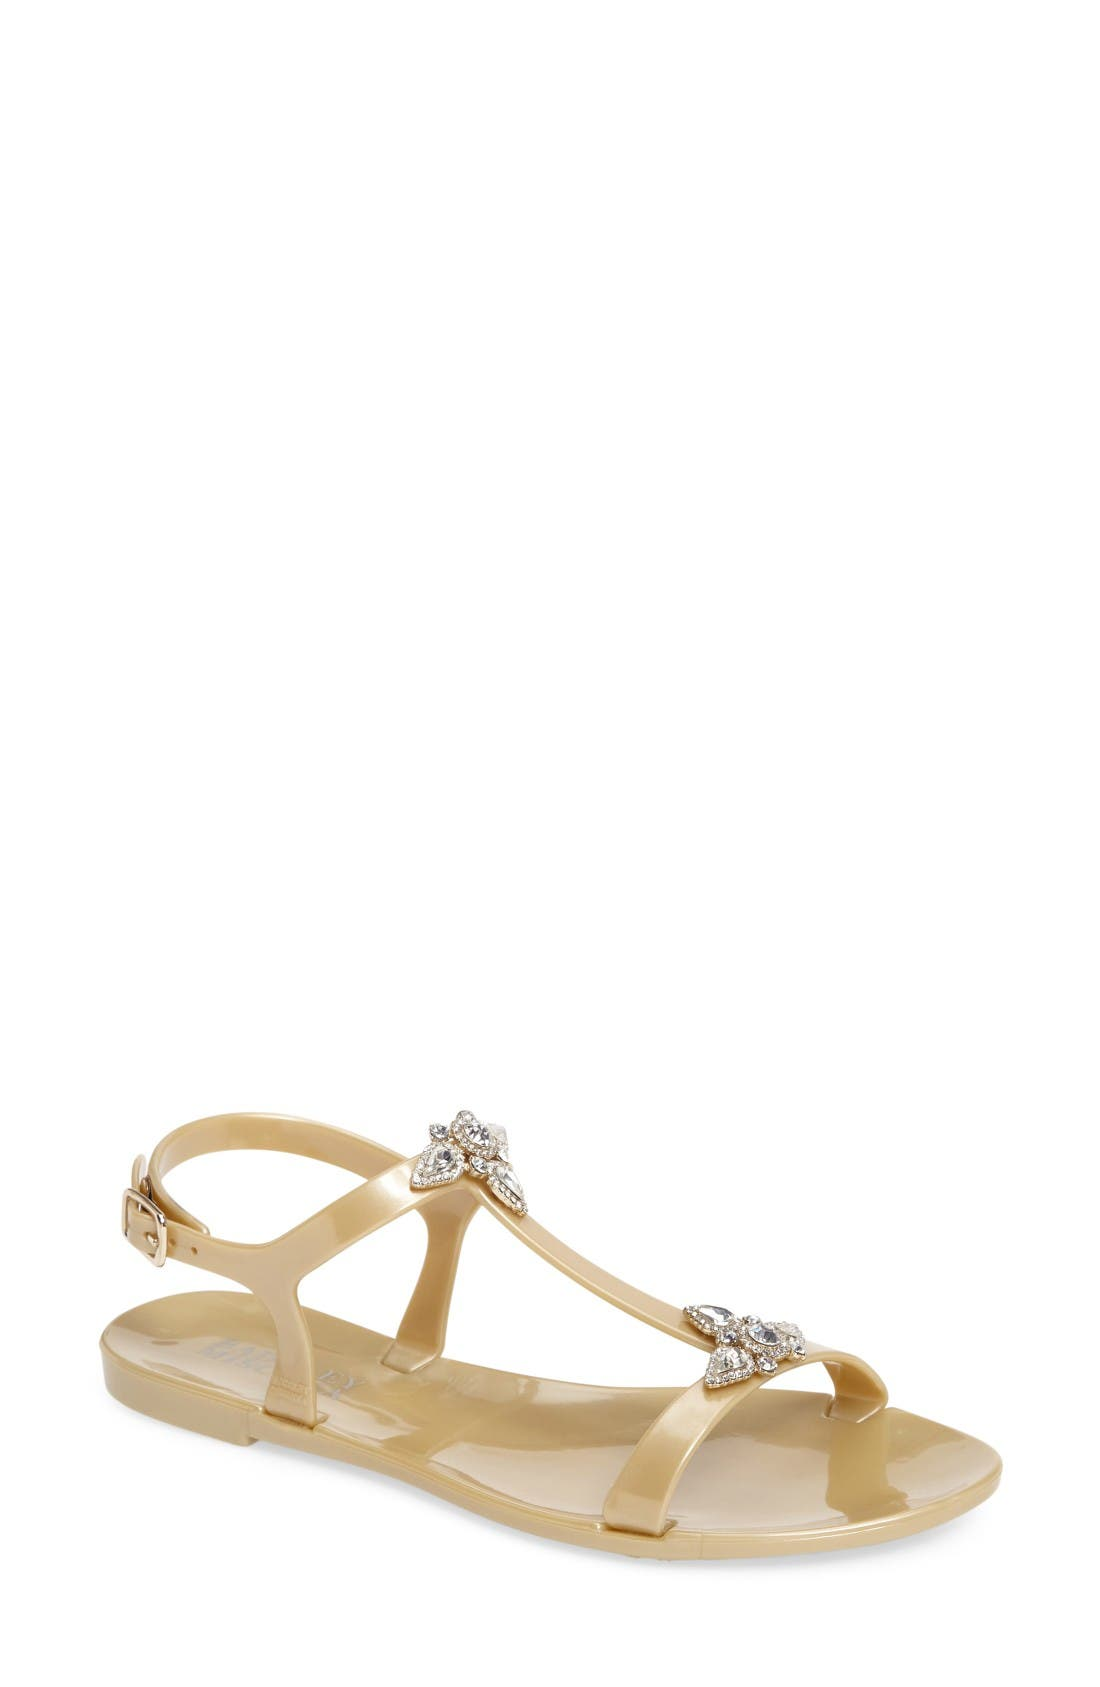 Alternate Image 1 Selected - Badgley Mischka Belize Crystal Embellished Flat Sandal (Women)